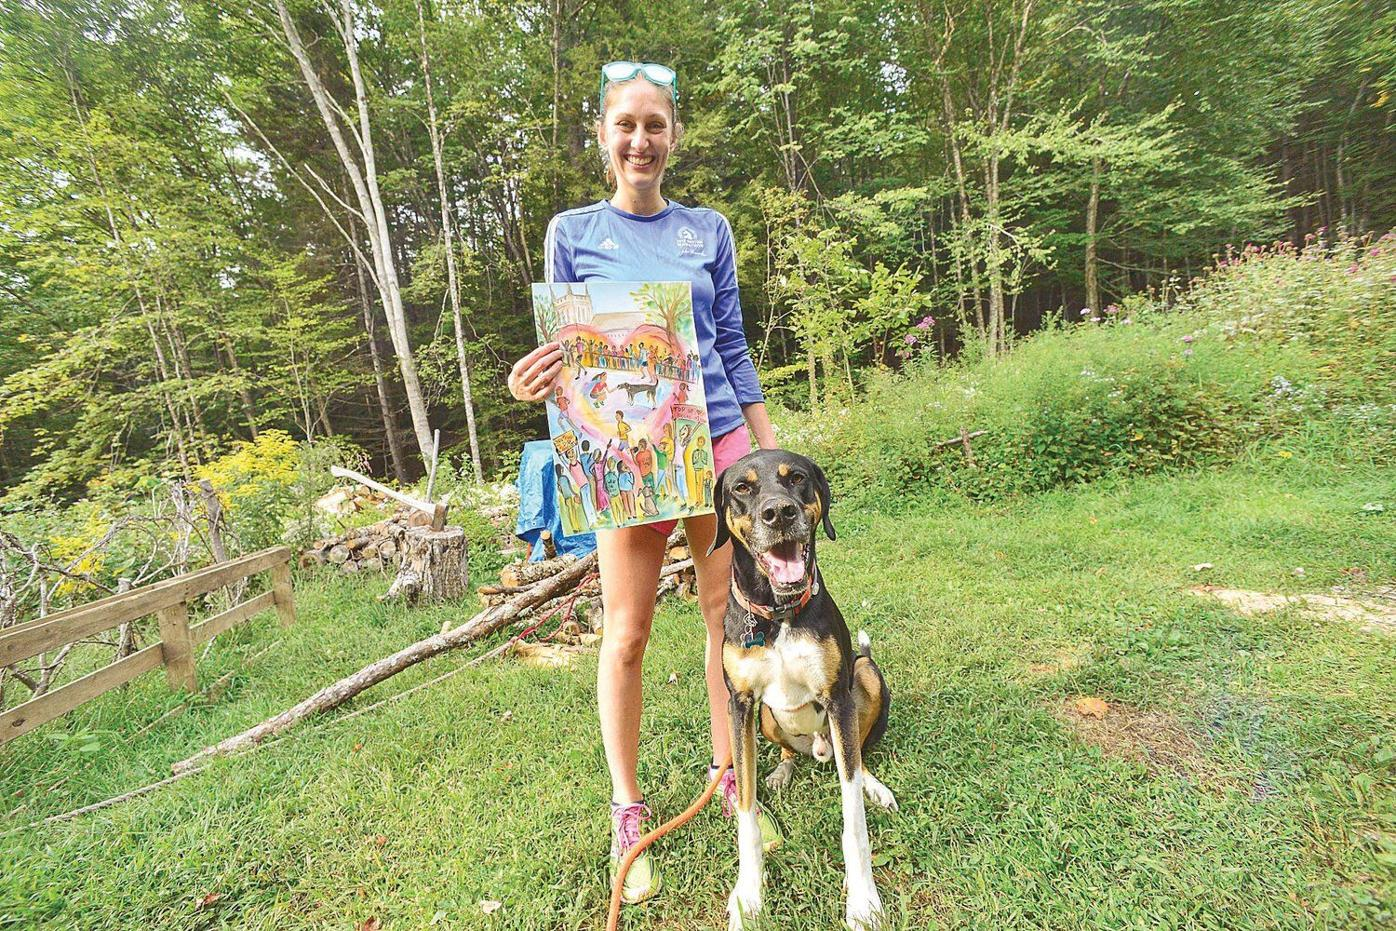 Local runner writes, illustrates children's book inspired by Boston Marathon